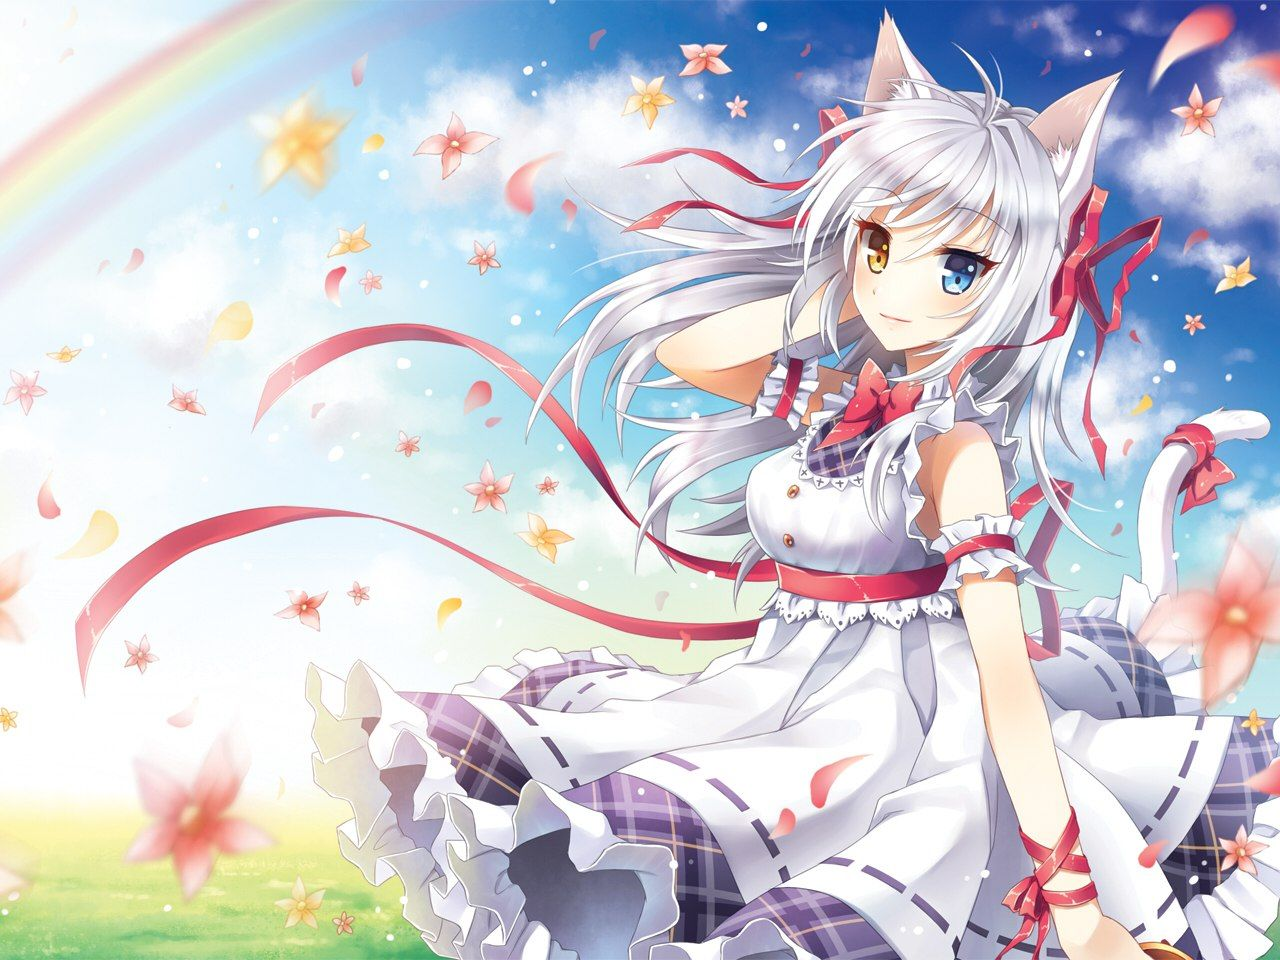 Anime Cat Girl with White Hair Wallpaper Stuff to Buy